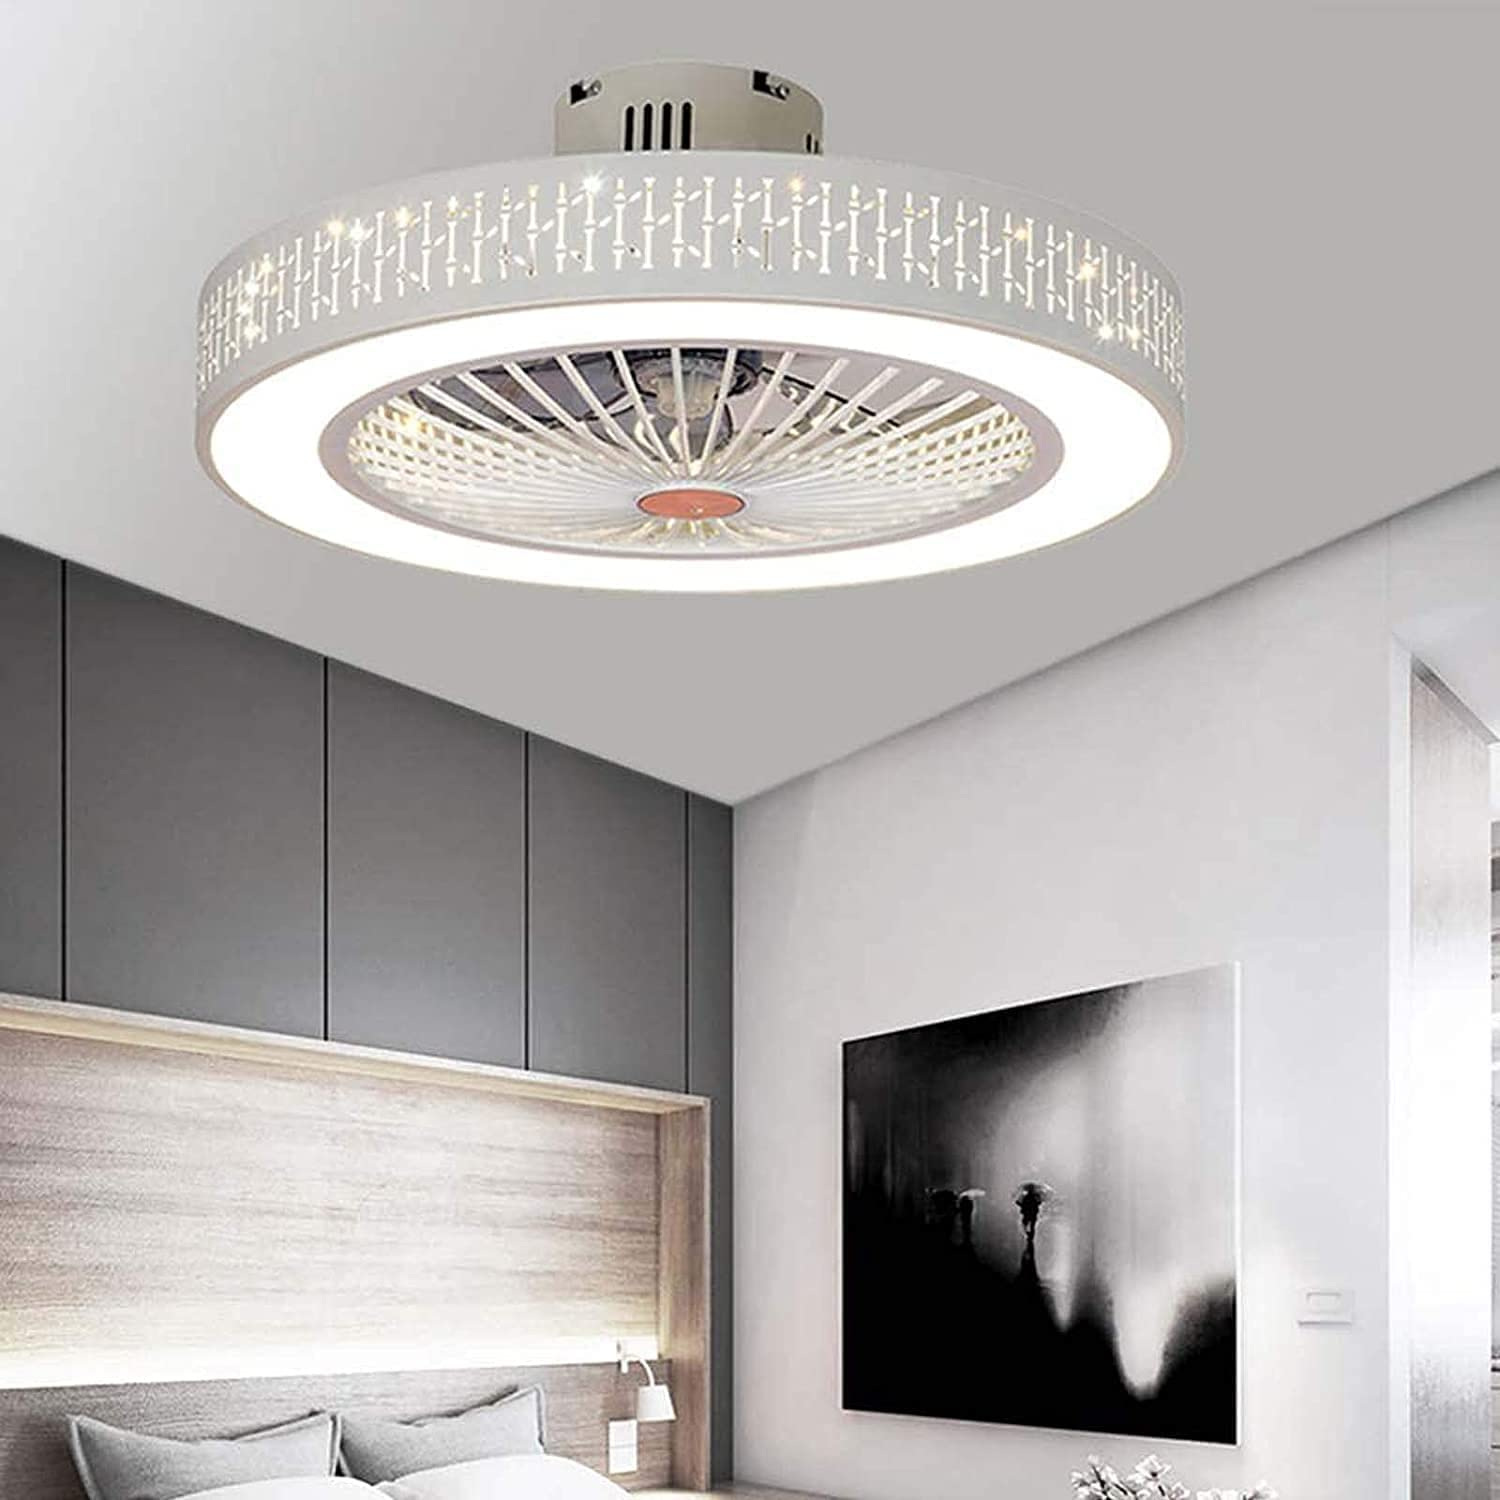 Ceiling Lamp Fan with LED Lighting Remote Control Qu Animer and price revision and Challenge the lowest price of Japan